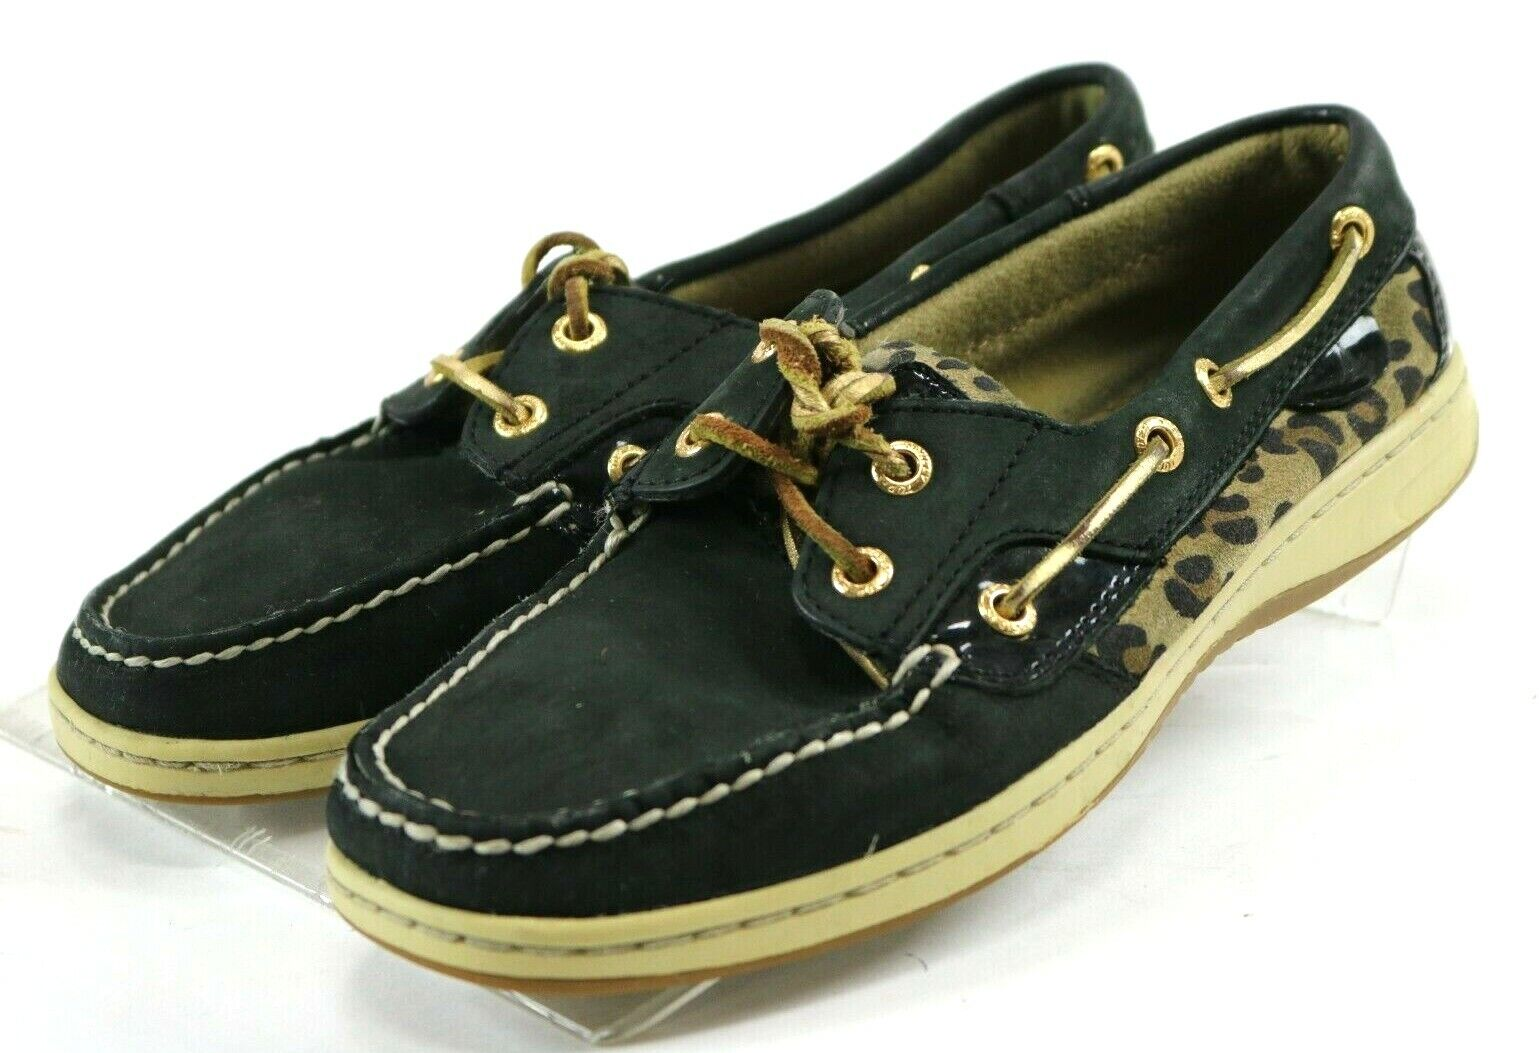 Sperry Top Sider Bluefish Women's Boat Shoes Size 7 Leopard Print Black